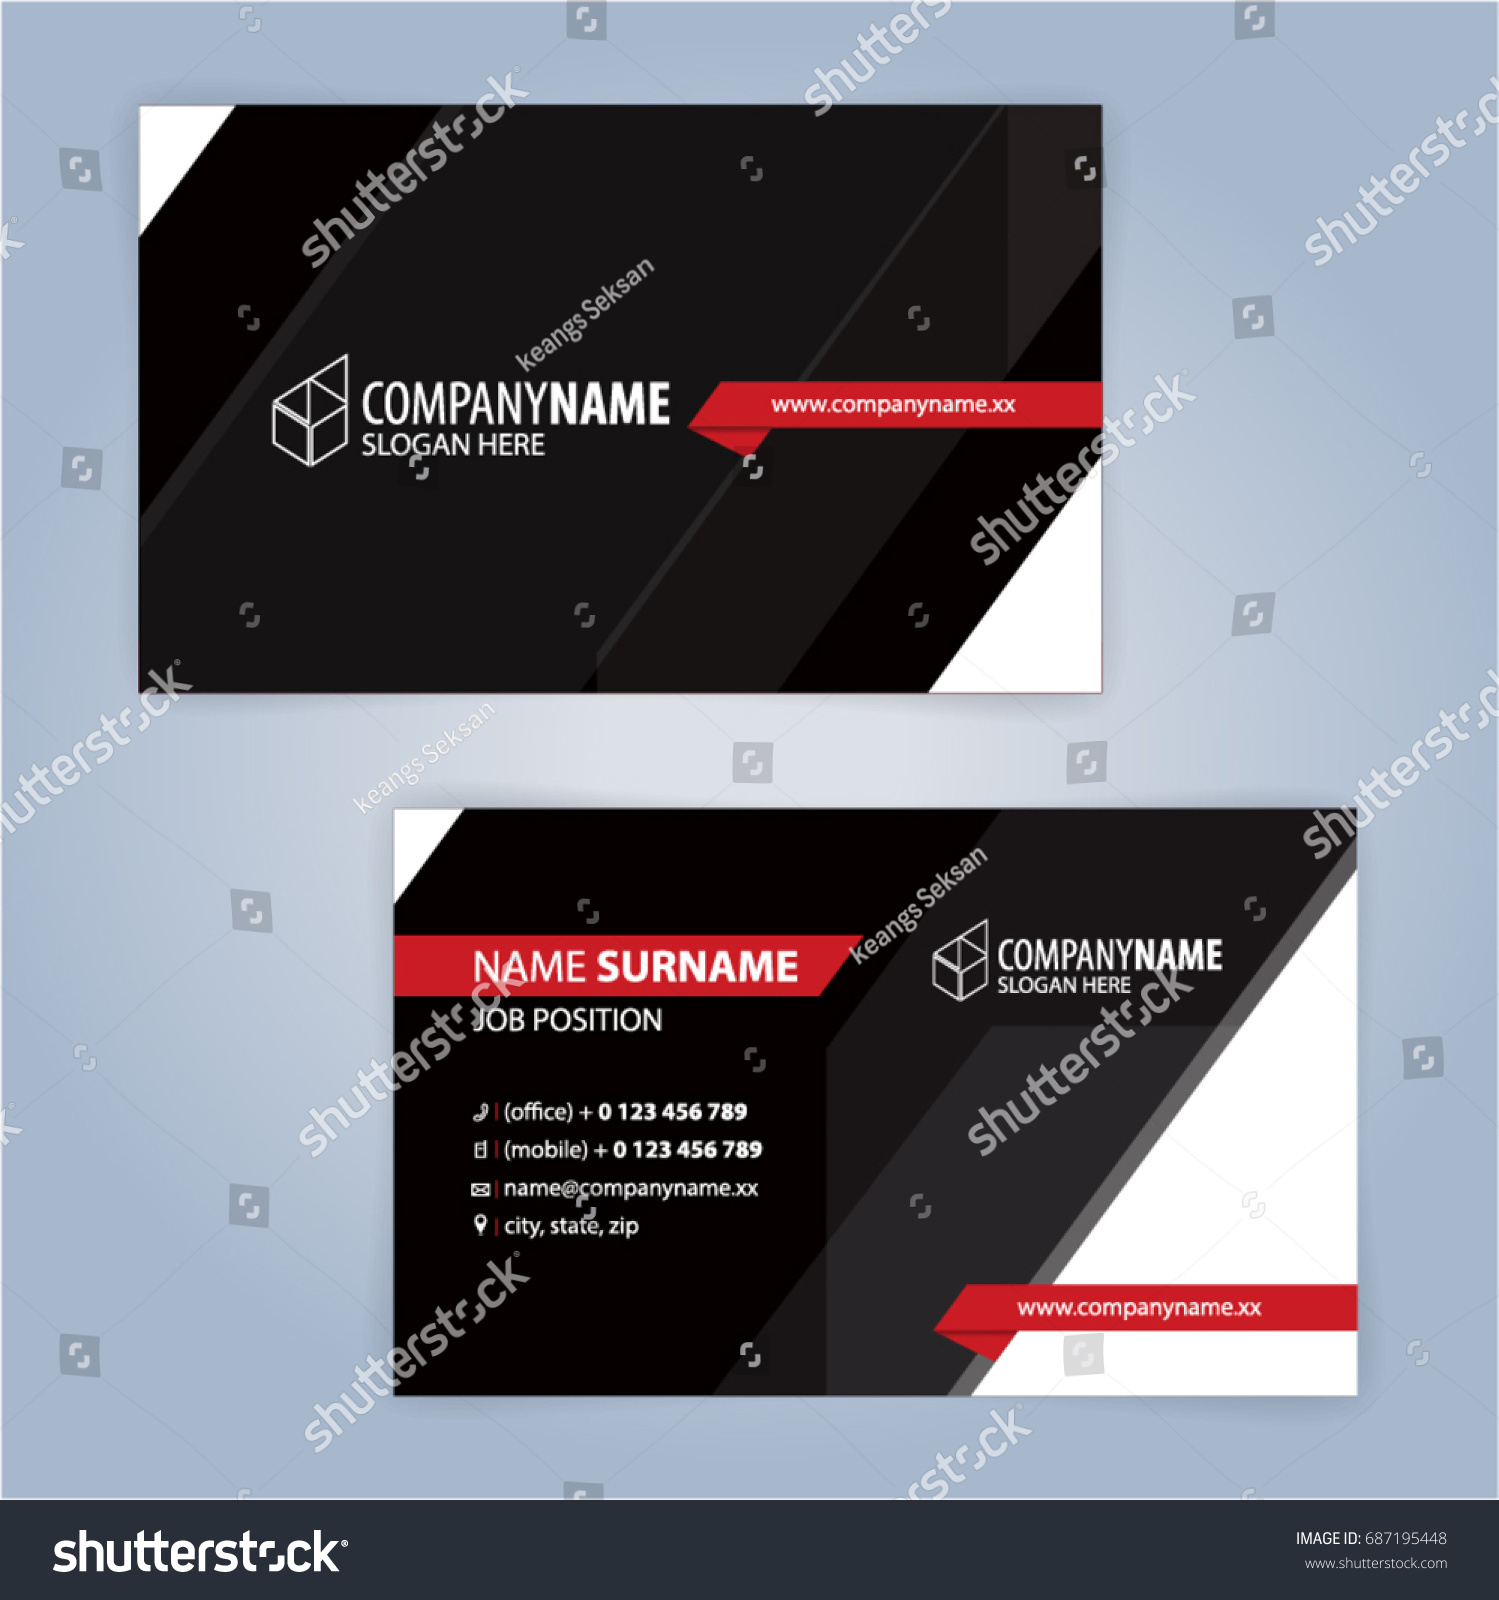 business card template red black illustration stock vector